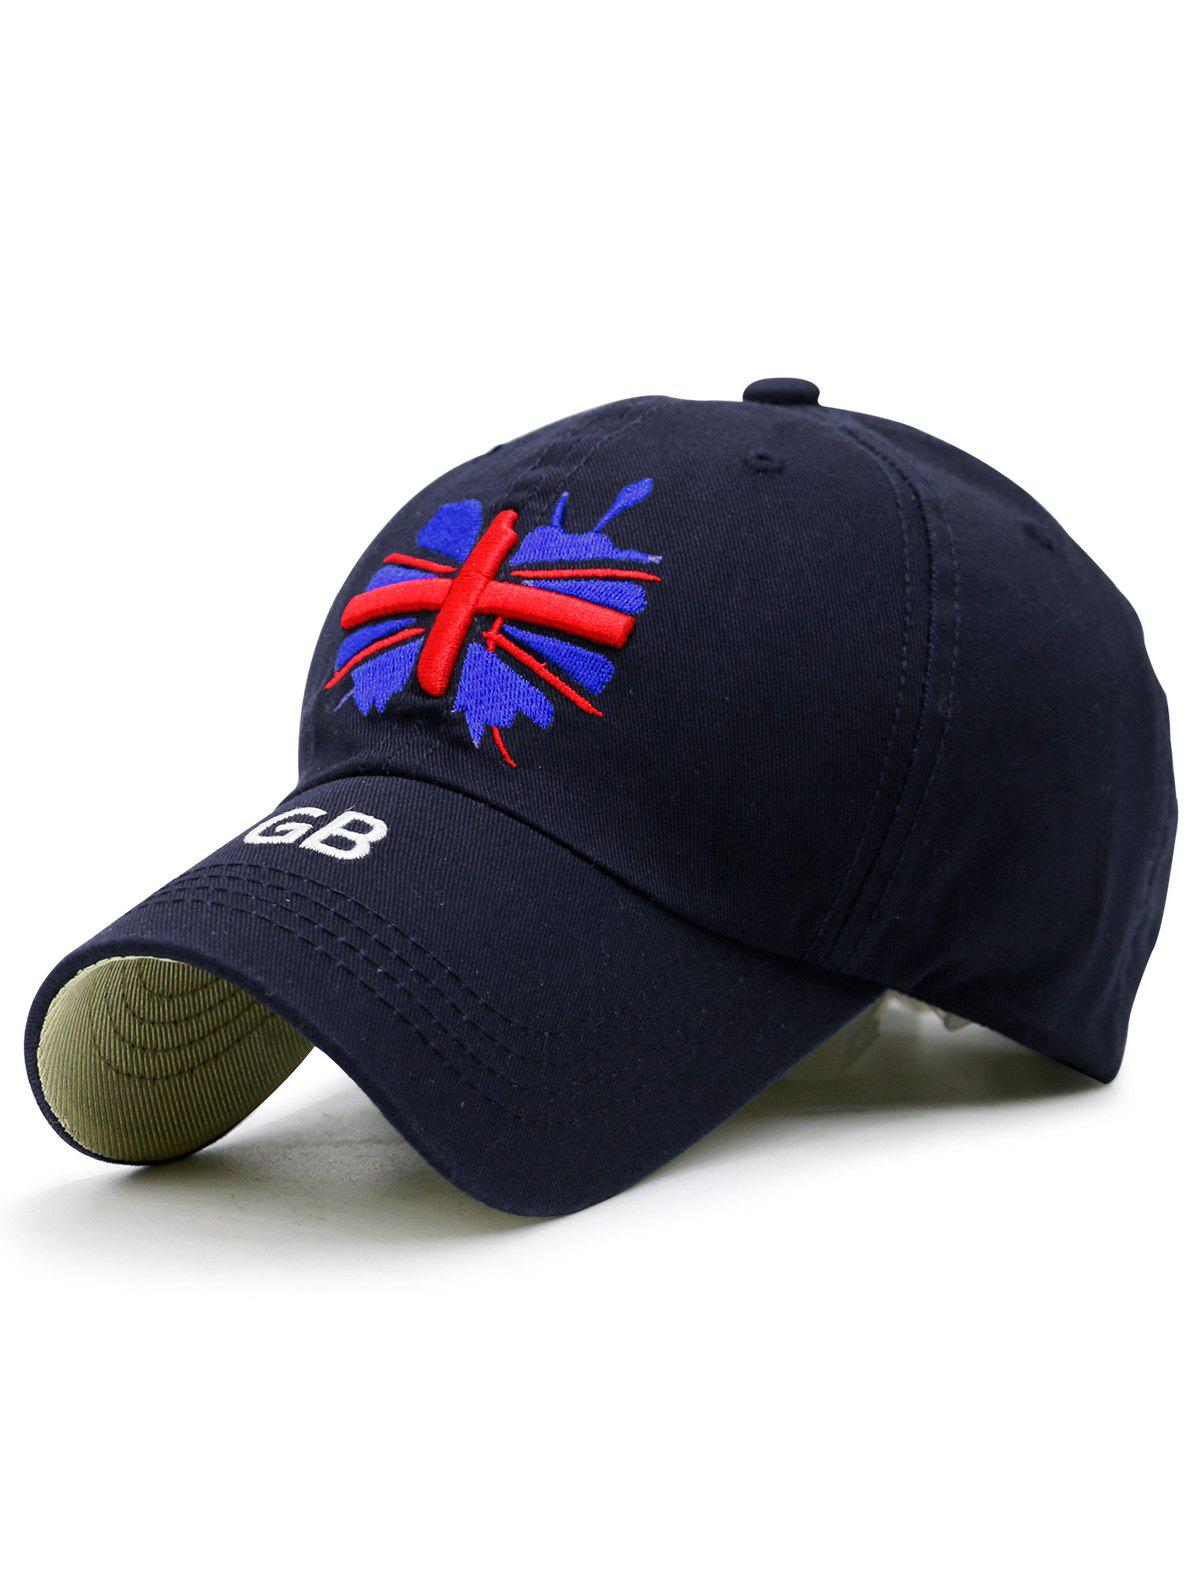 England Flag Embroidered Baseball Hat